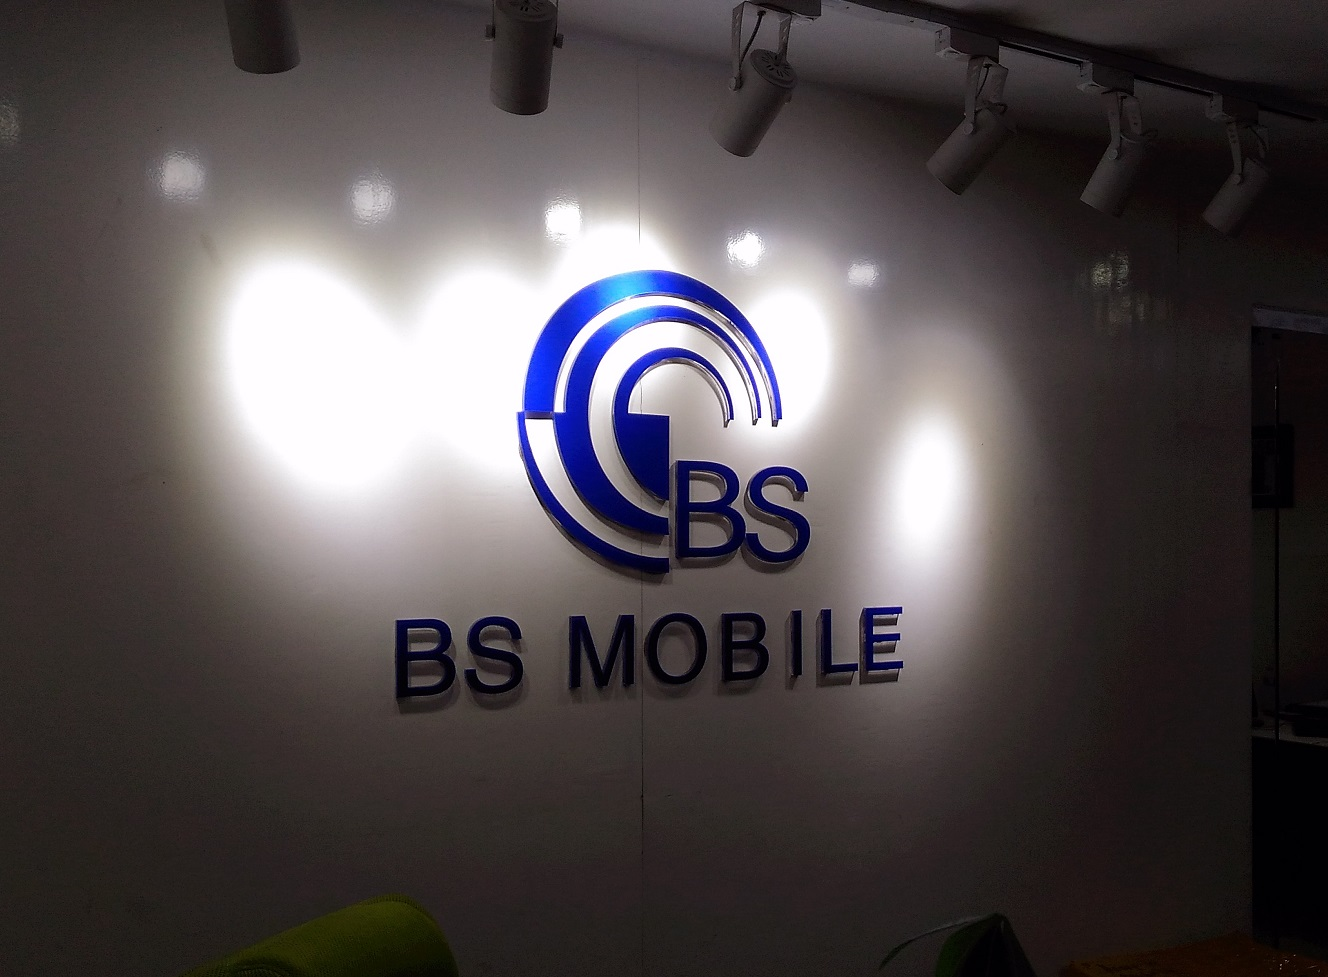 BS Mobile logo - BS Mobile leaks own Php 3k phone with 4G LTE, 5-inch screen, and Android Lollipop